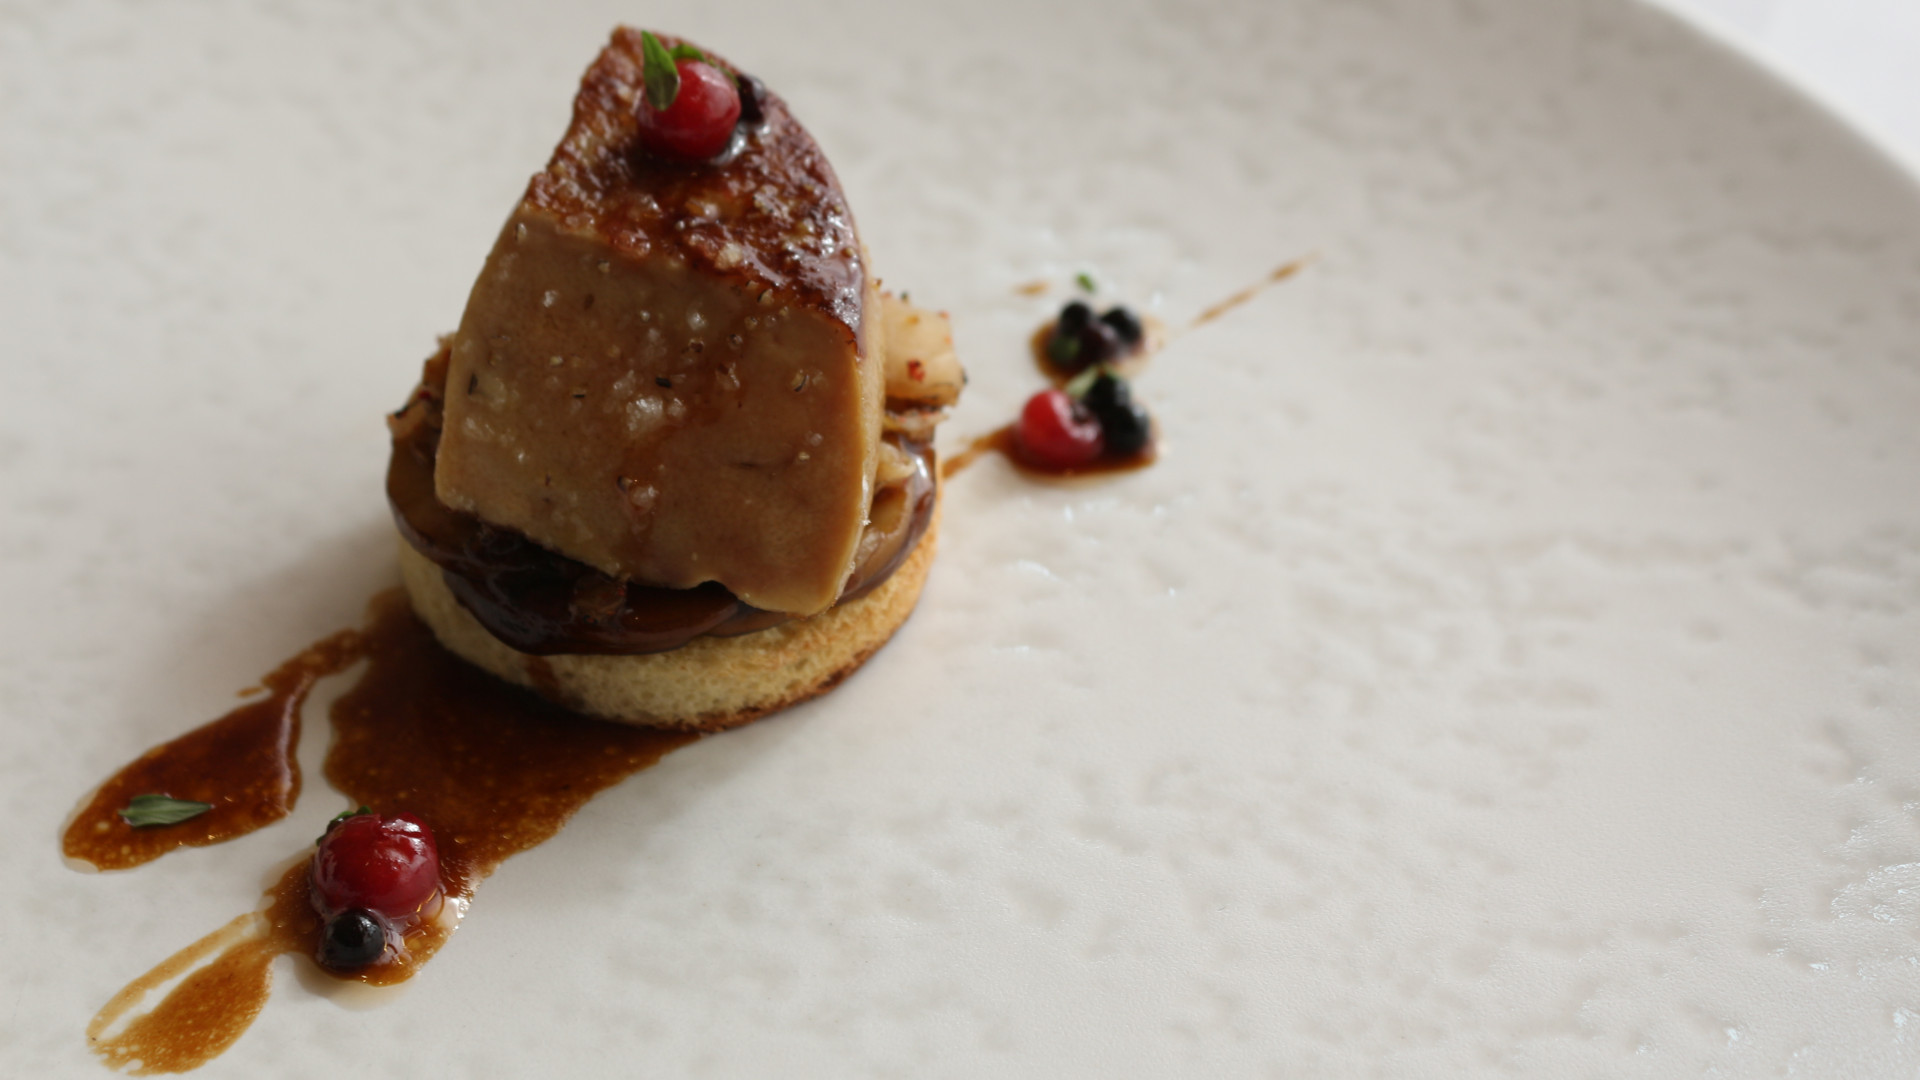 Seared fois gras